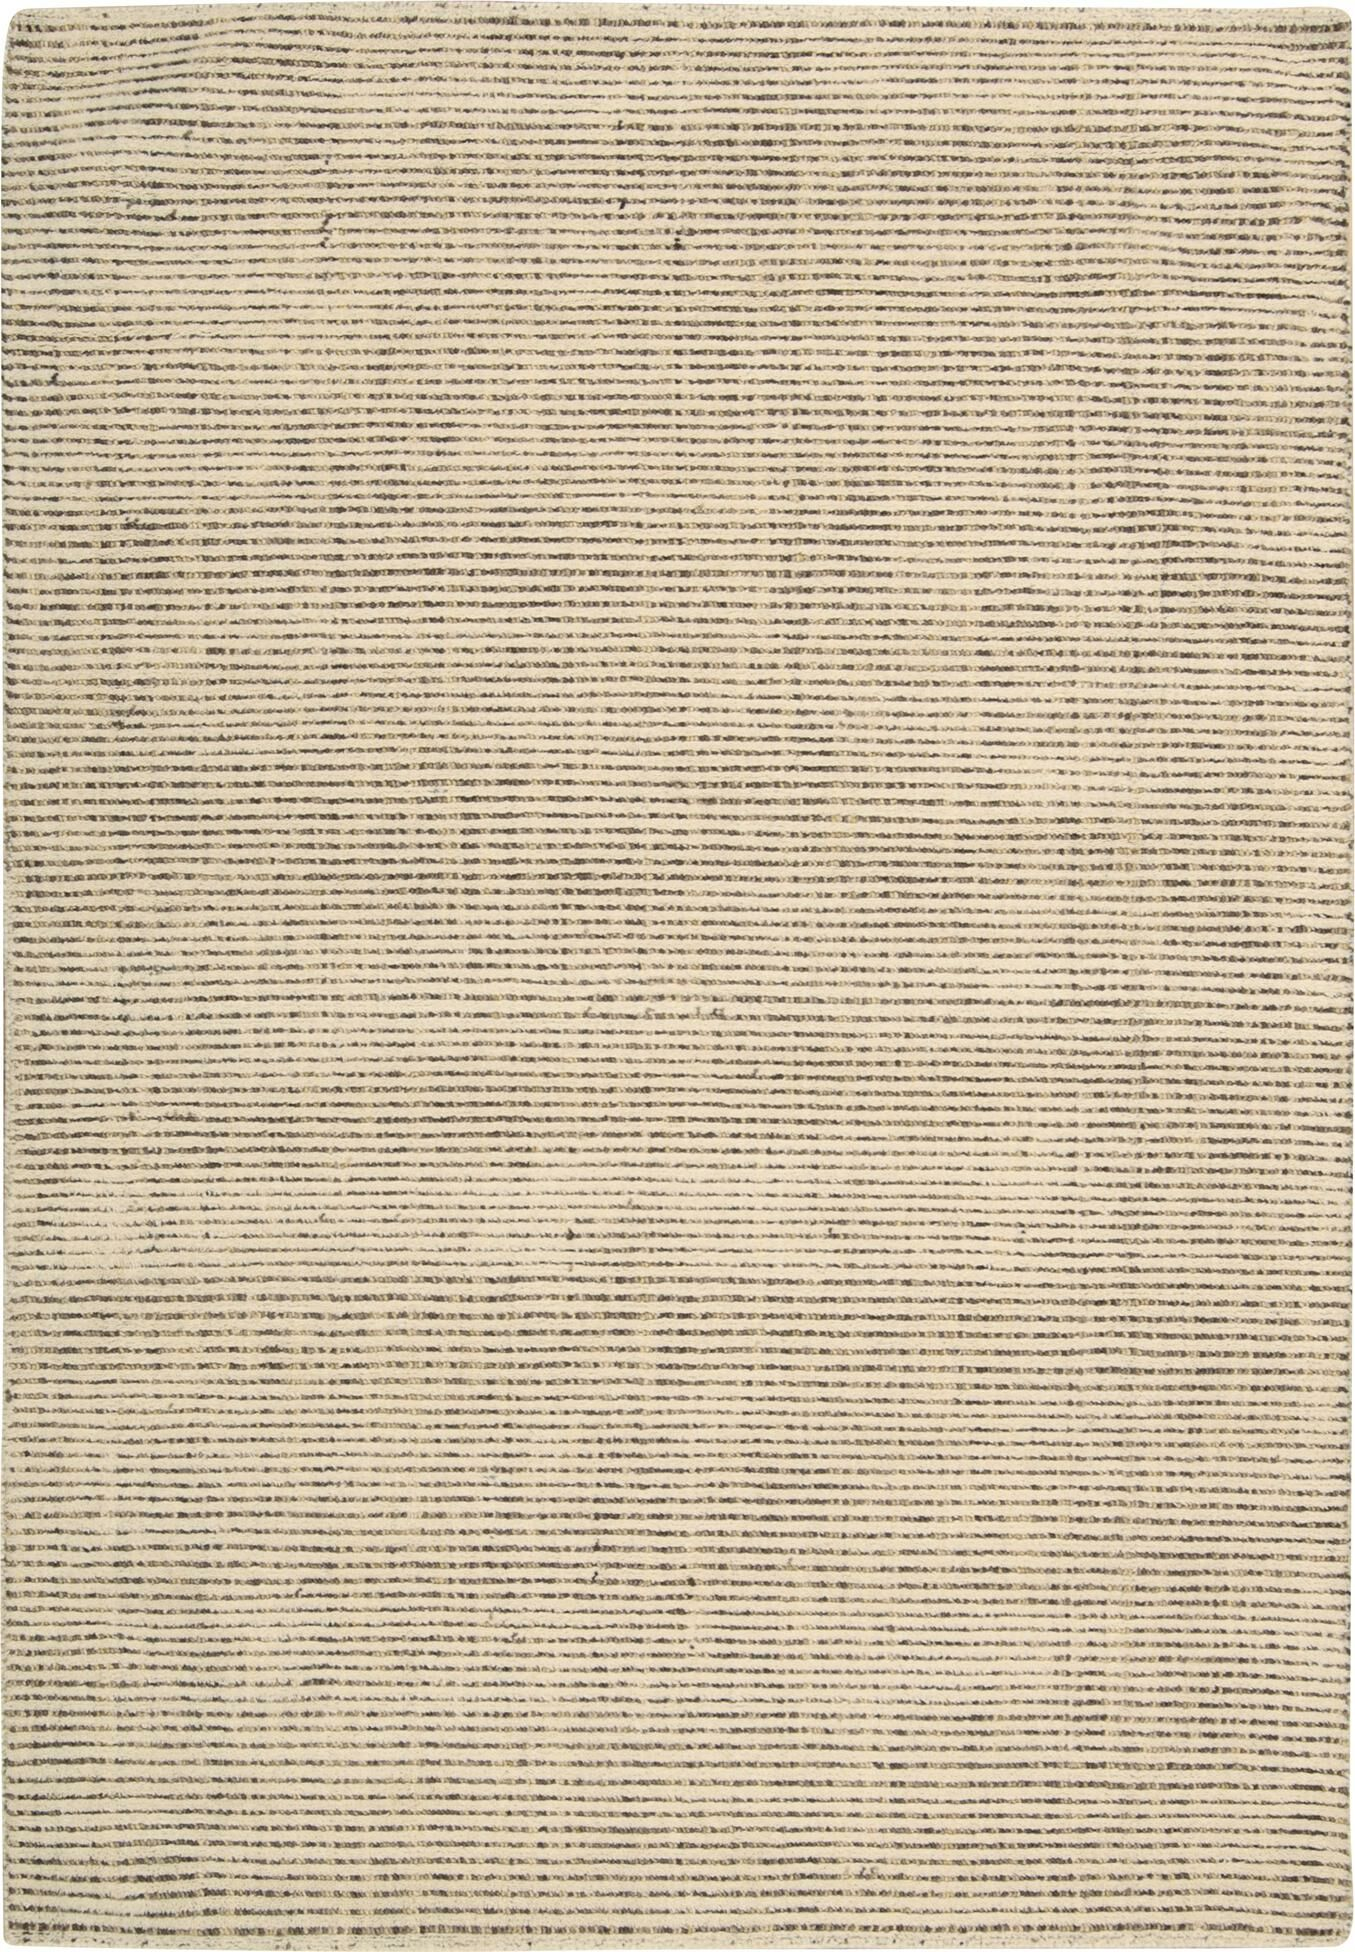 Spartacus Hand-Woven Beige Area Rug Rug Size: Rectangle 7'9